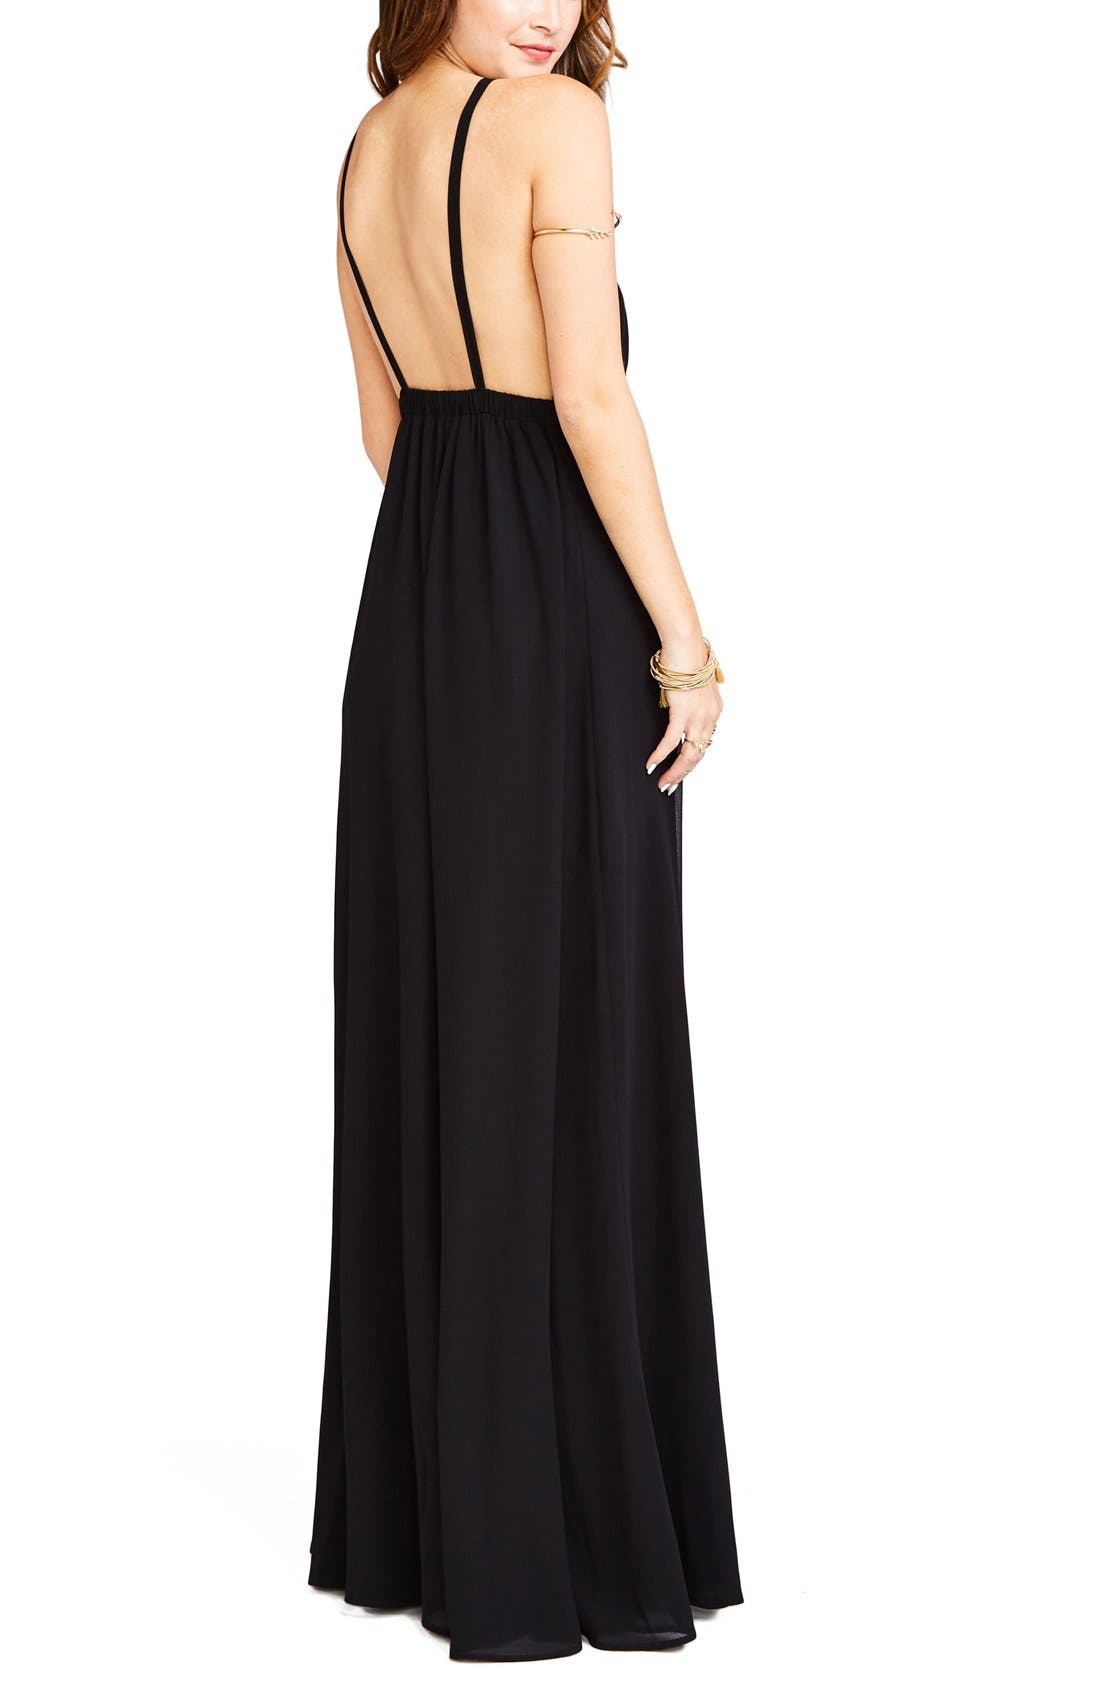 Amanda Open Back Blouson Gown,                             Alternate thumbnail 2, color,                             Black Chiffon